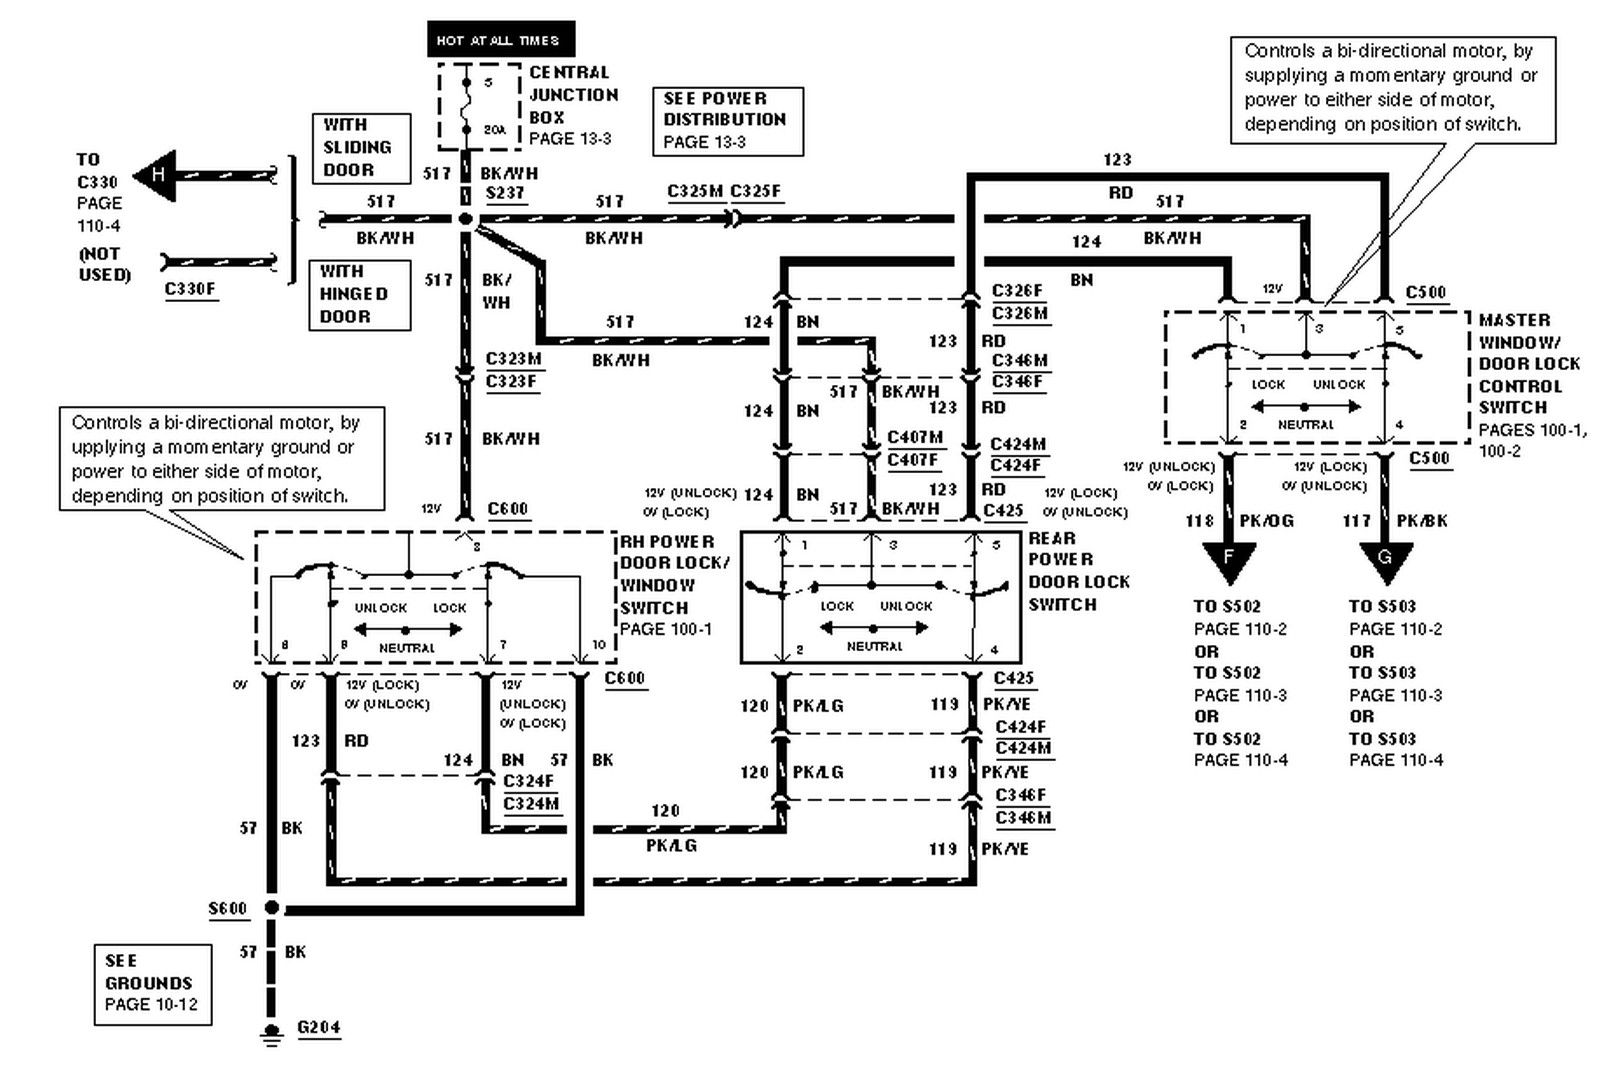 80 2010_11_05_235941_99_e_350_power_door_lock_wiring_diagram_e574233ae37af9677ff5fddb790386a28f9dd7ad ford f150 wiring diagram vehiclepad readingrat net 1997 ford truck wiring schematics at gsmx.co